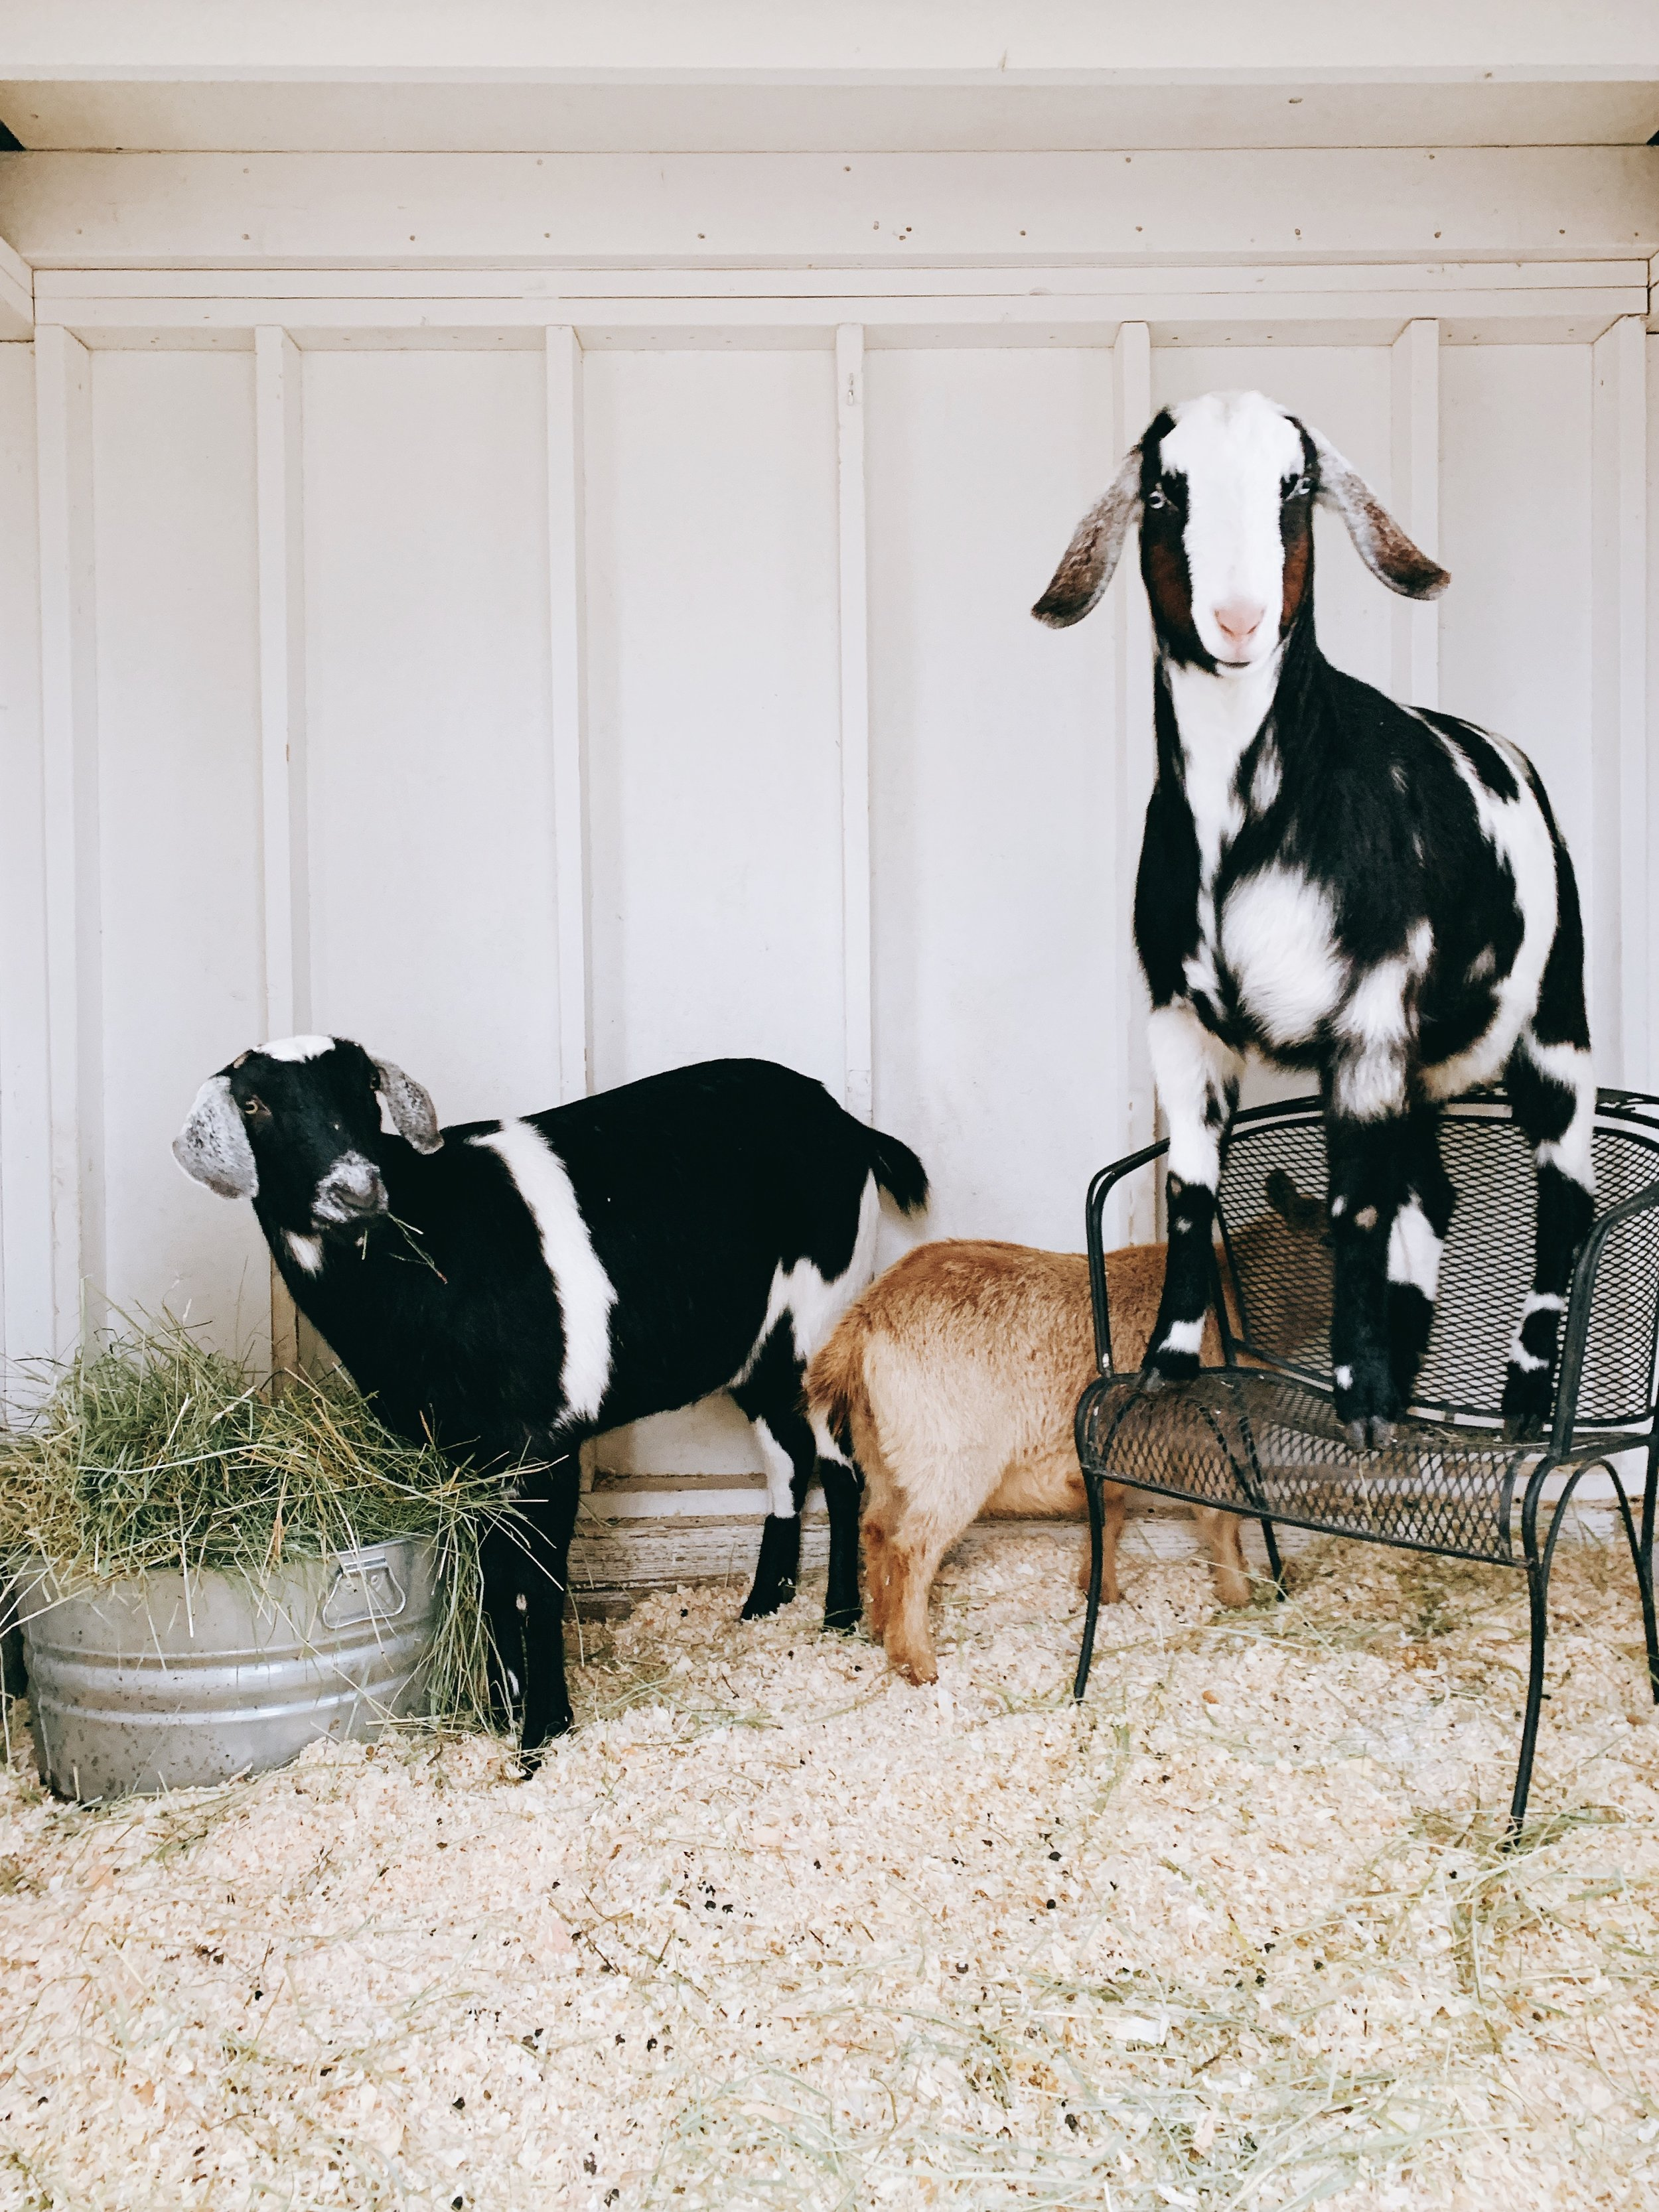 Raising goats is made easy when you have the correct supplies! These goat raising tips will help keep your goats happy and healthy! #goats #homestead #raisinggoats boxwoodavenue.com